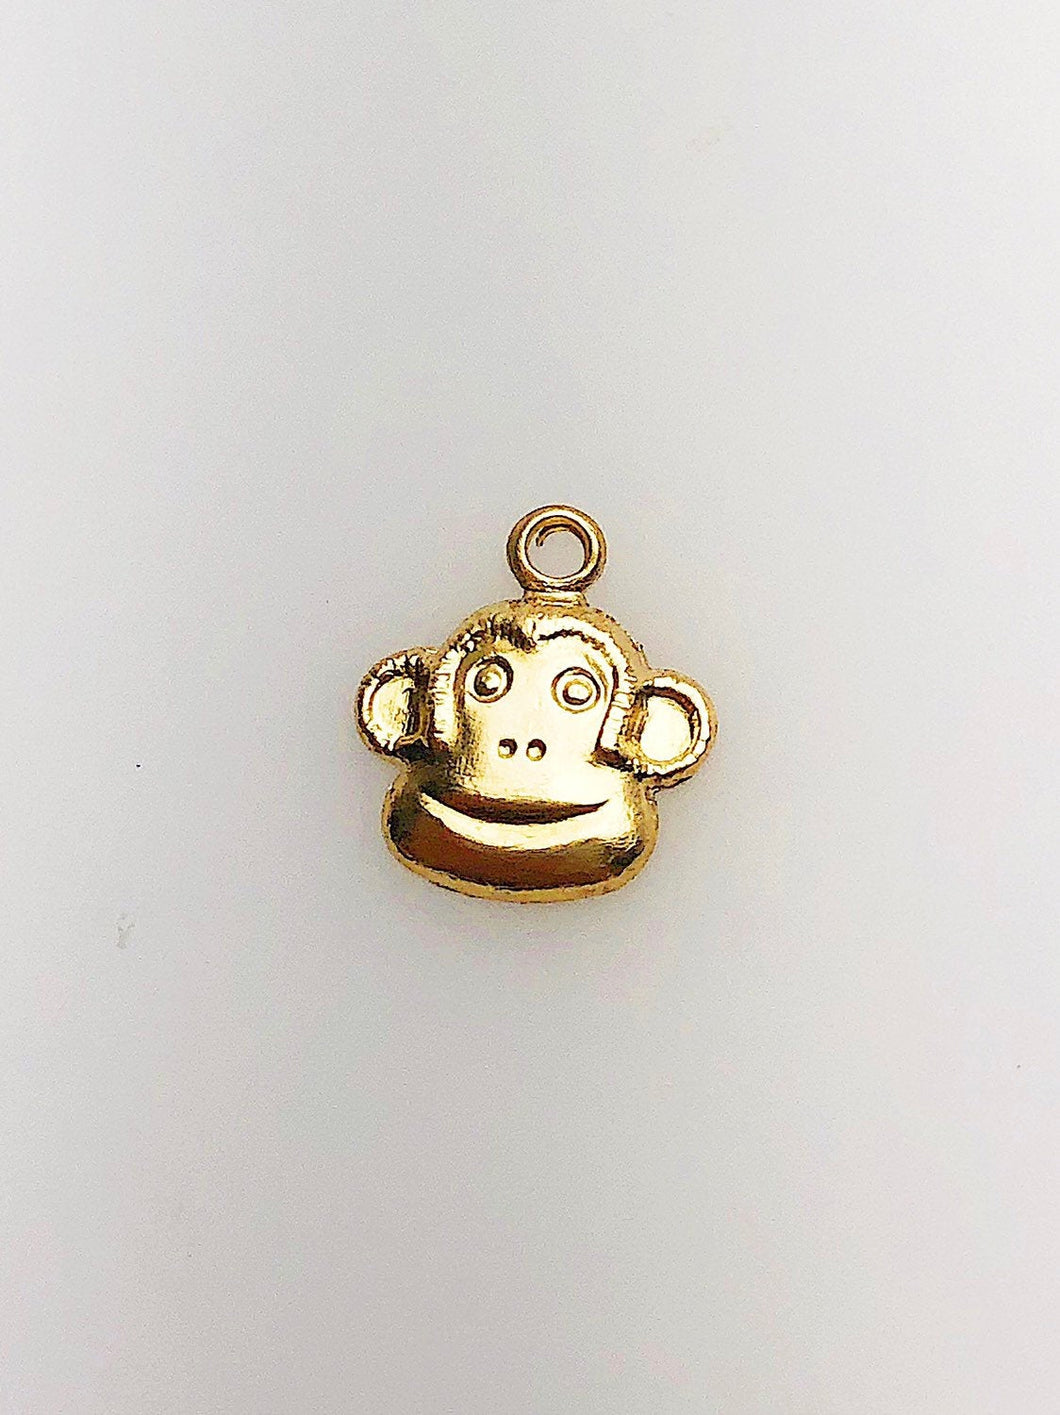 14K Gold Fill Monkey Charm w/ Ring, 9.0mm, Made in USA - 2344